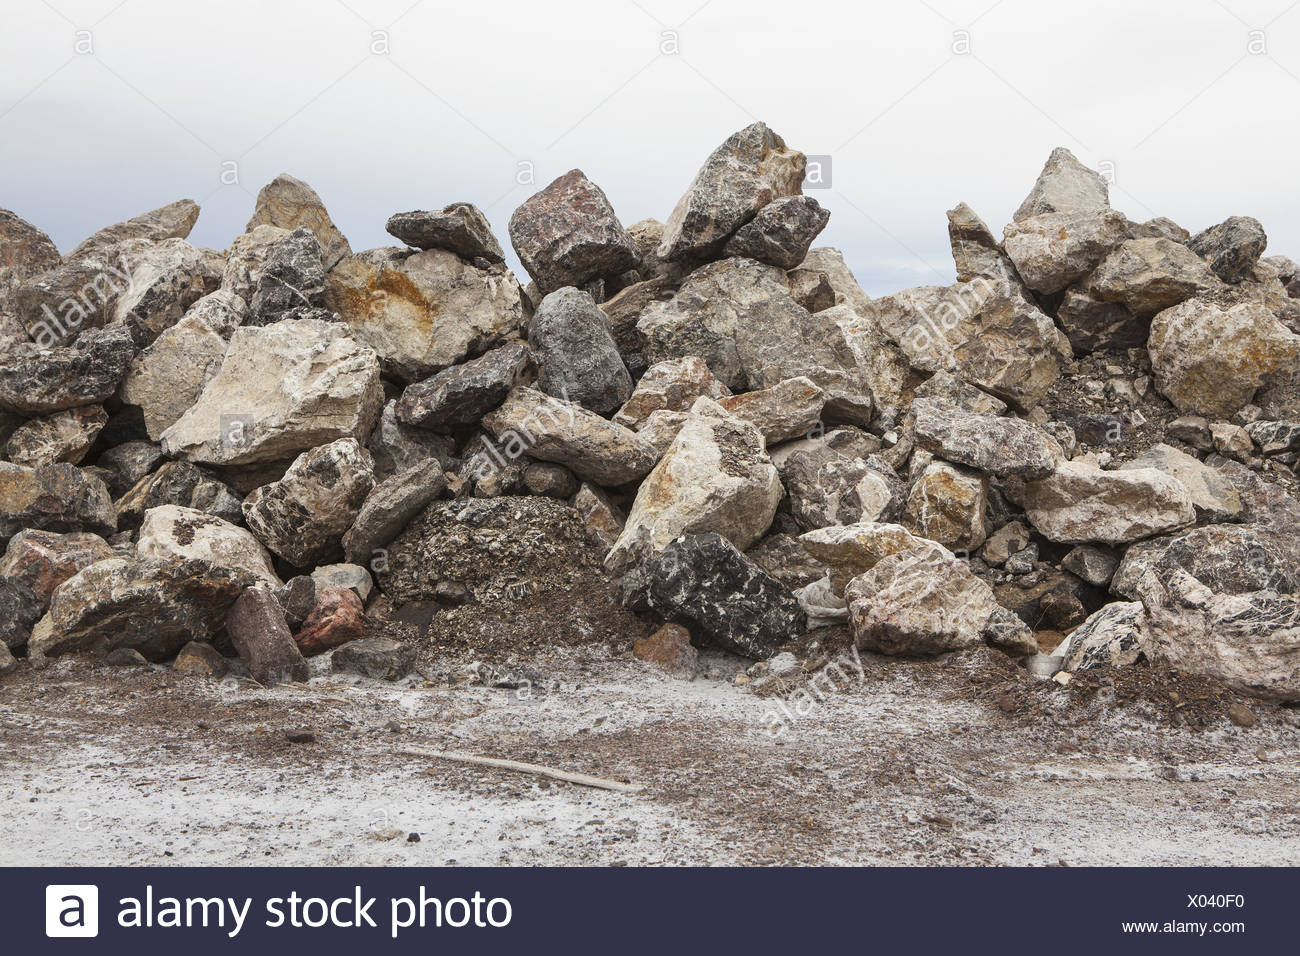 Utah USA large pile of rocks used for road construction - Stock Image